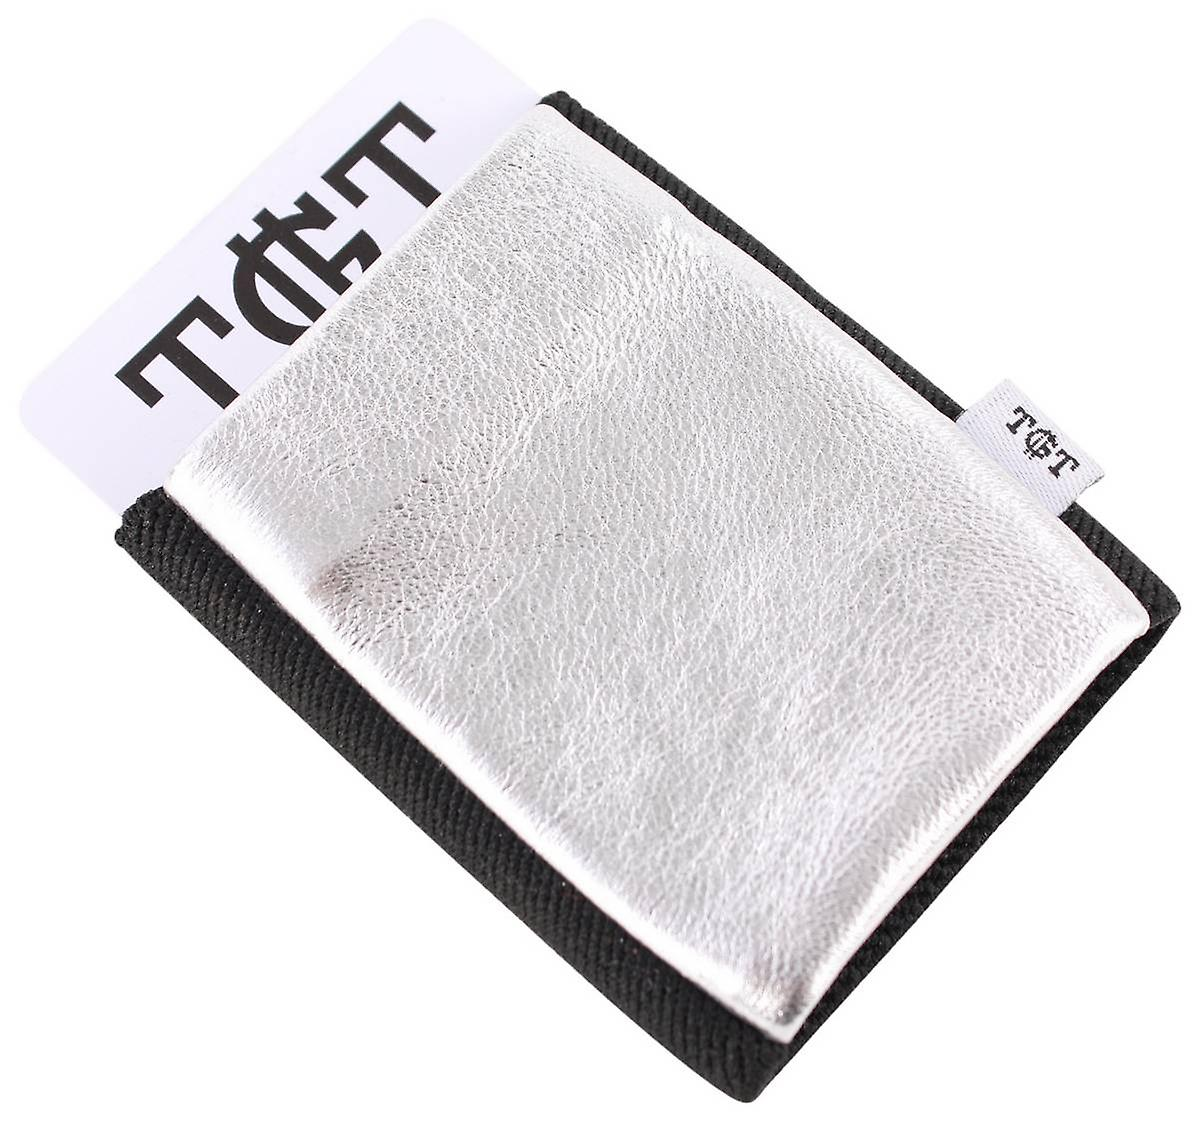 TGT Tight Wallets Elastic Card Holder - Silver/Black